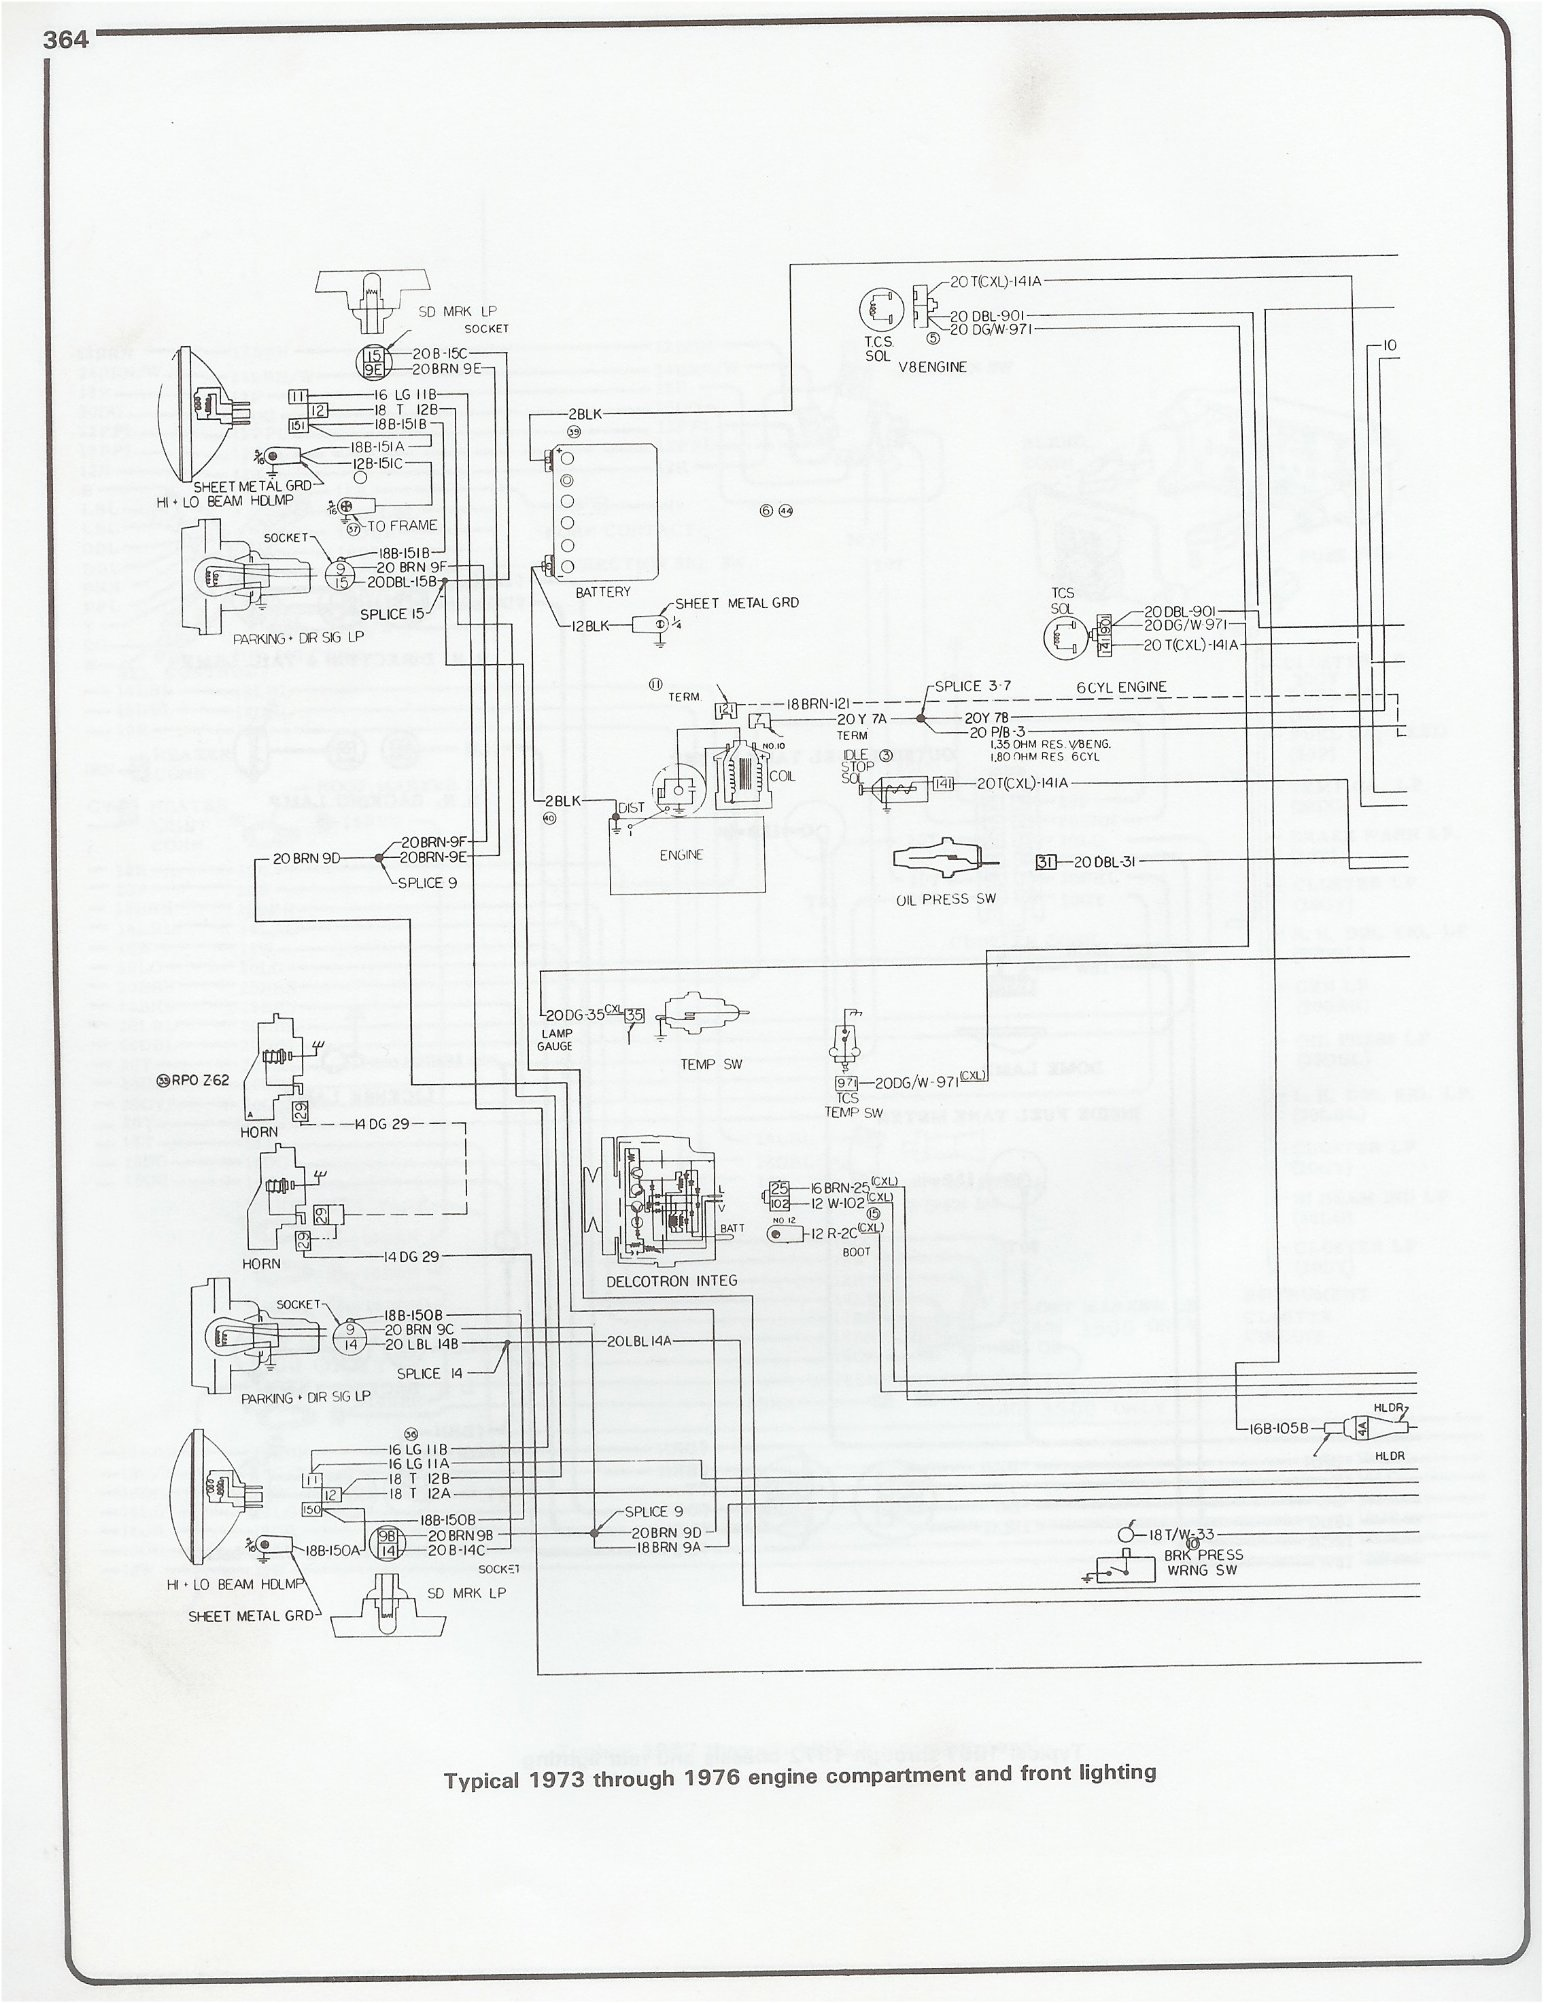 1989 Chevy Corvette Fuse Box Wiring Library 89 Diagram 76 C10 Data Schema